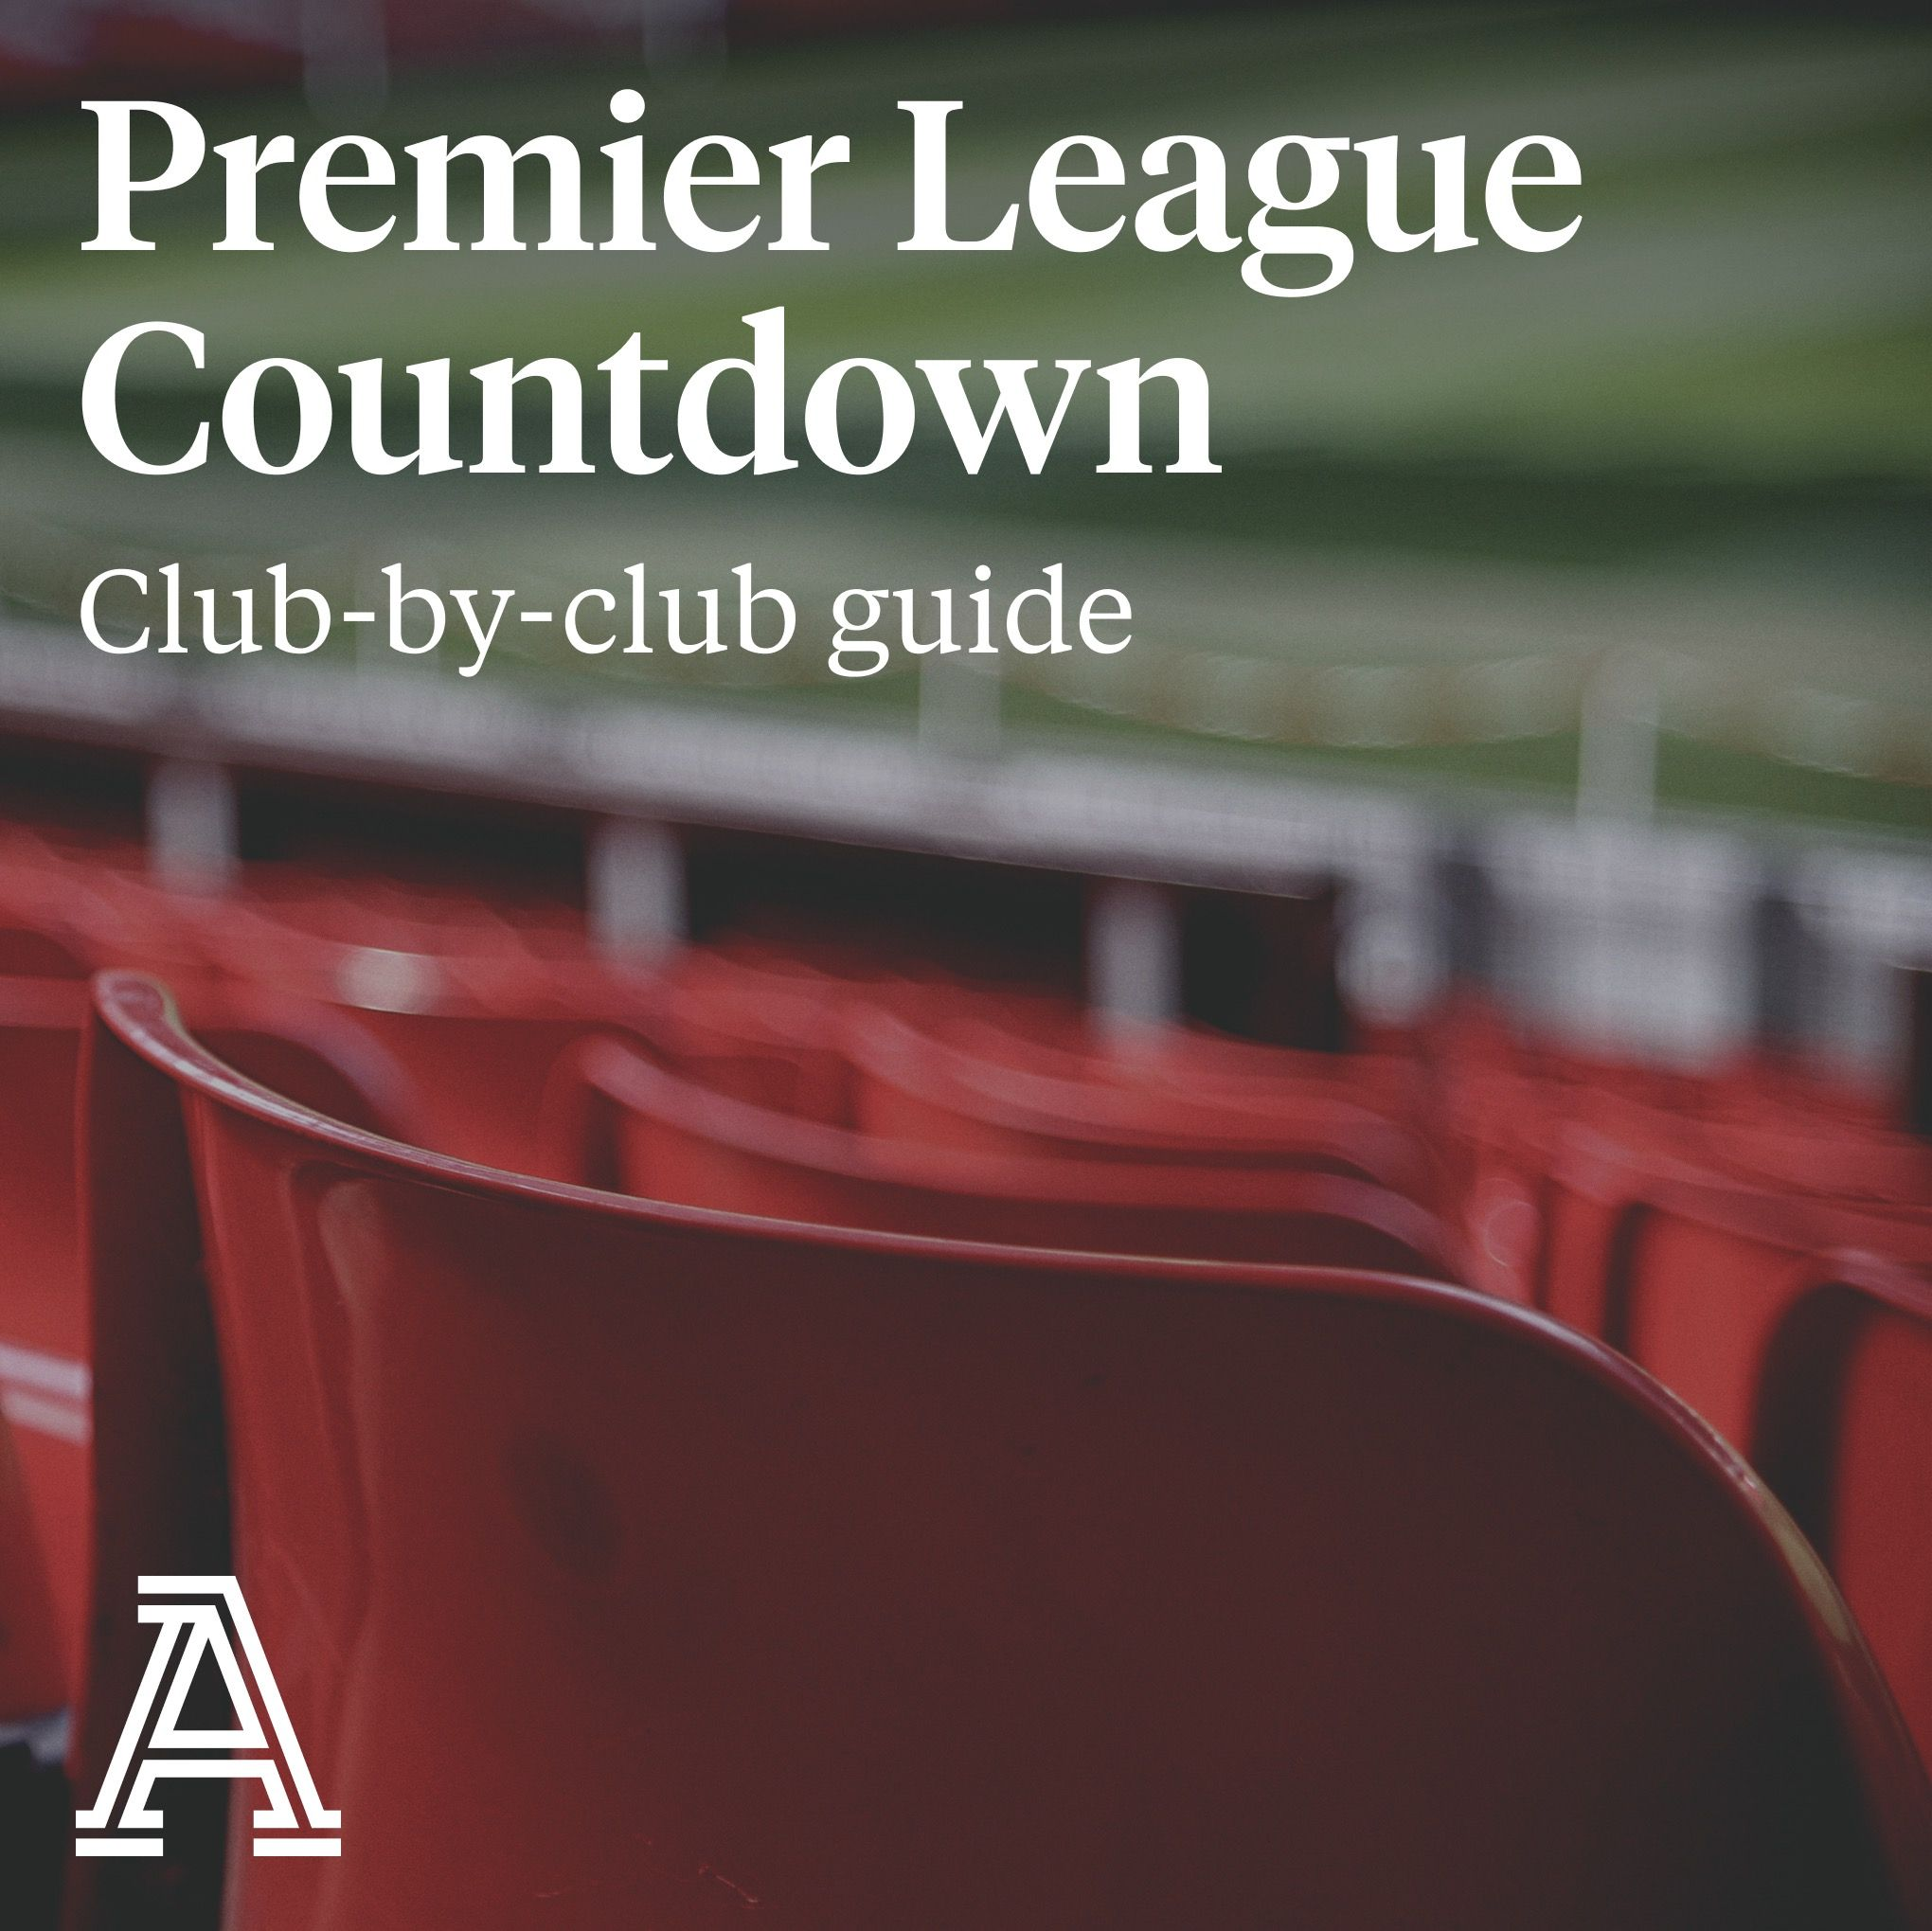 Premier League Countdown - Everton